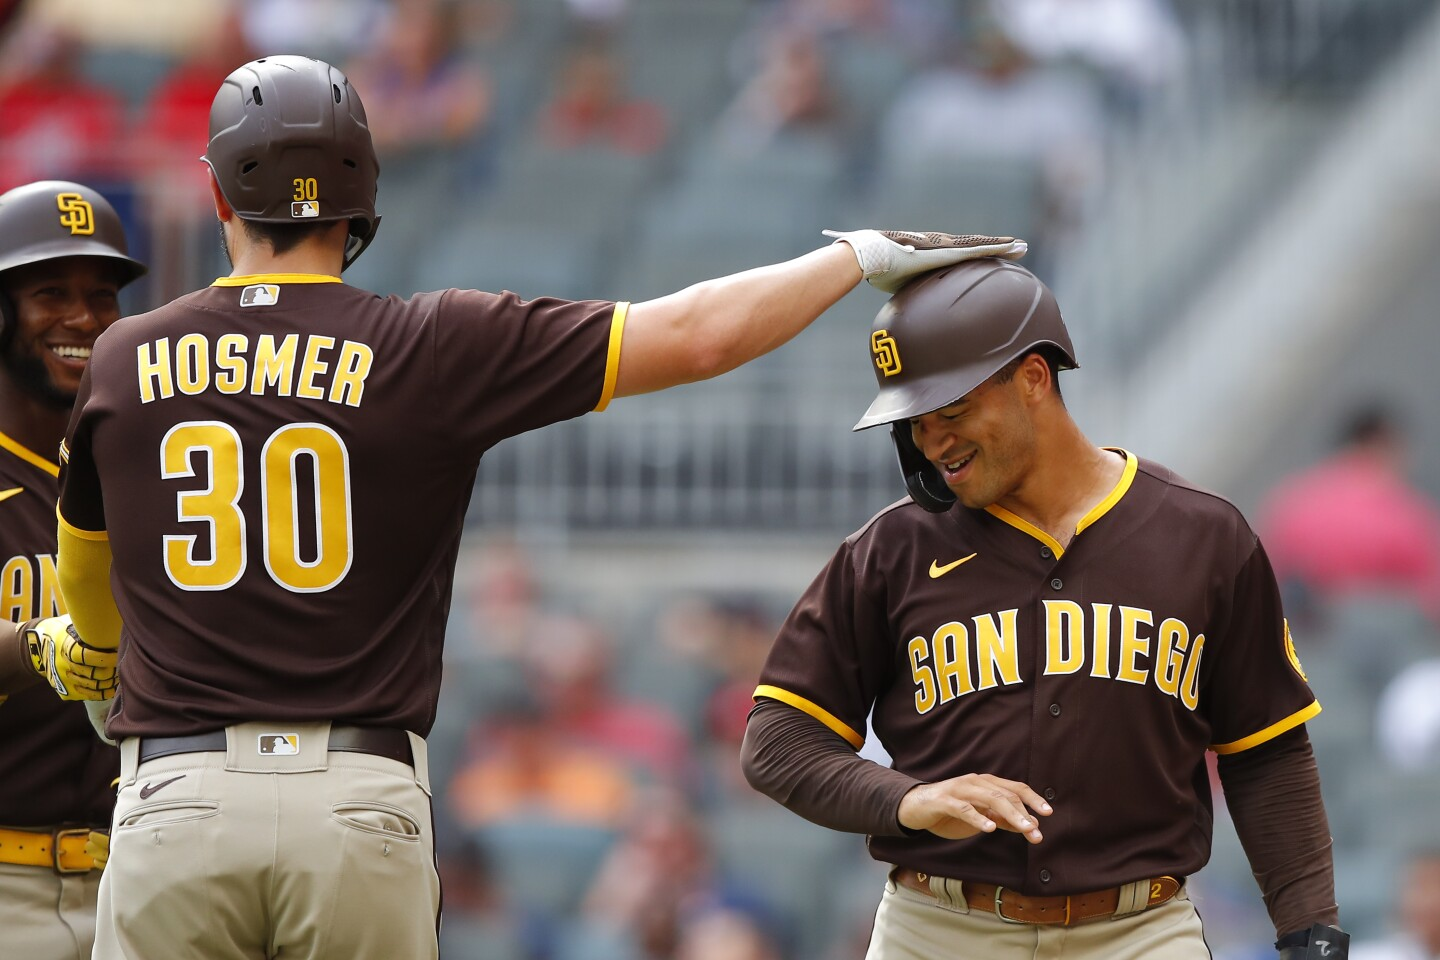 ATLANTA, GA - JULY 21: Trent Grisham #2 and Eric Hosmer #30 of the San Diego Padres celebrate after scoring in the first inning against the Atlanta Braves during game two of a doubleheader at Truist Park on July 21, 2021 in Atlanta, Georgia. (Photo by Todd Kirkland/Getty Images)